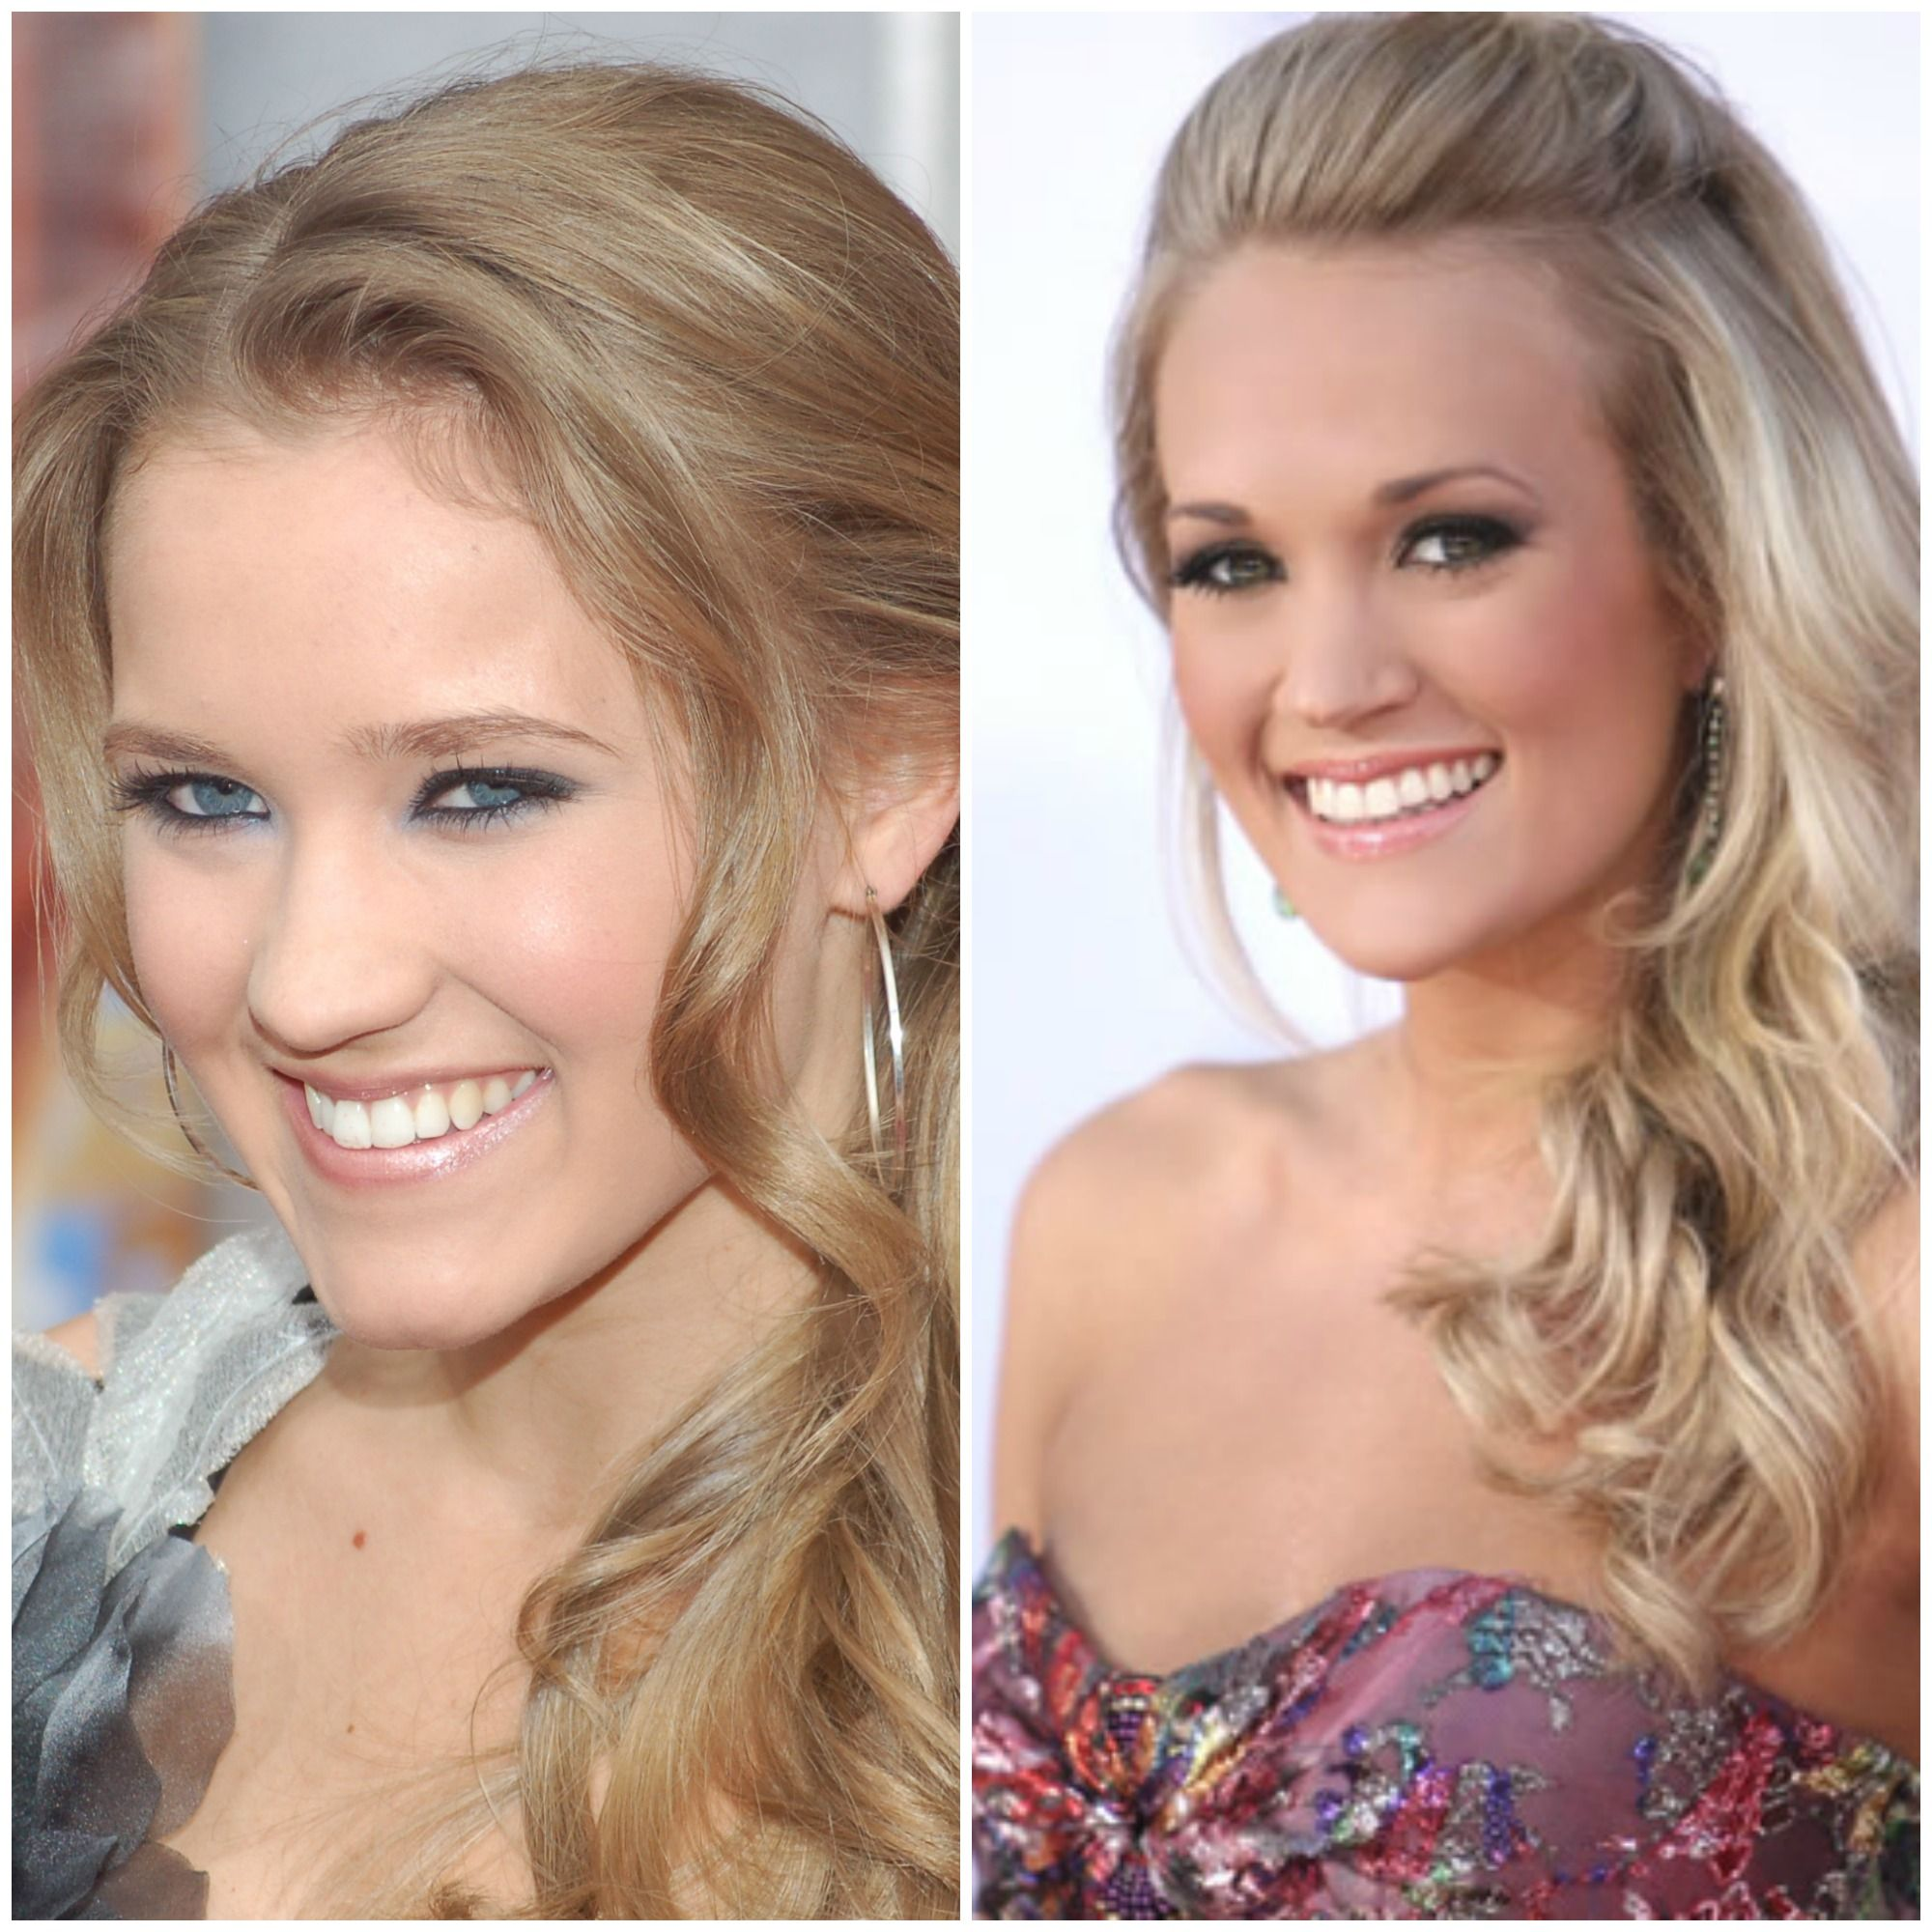 emily osment Carrie underwood nackt